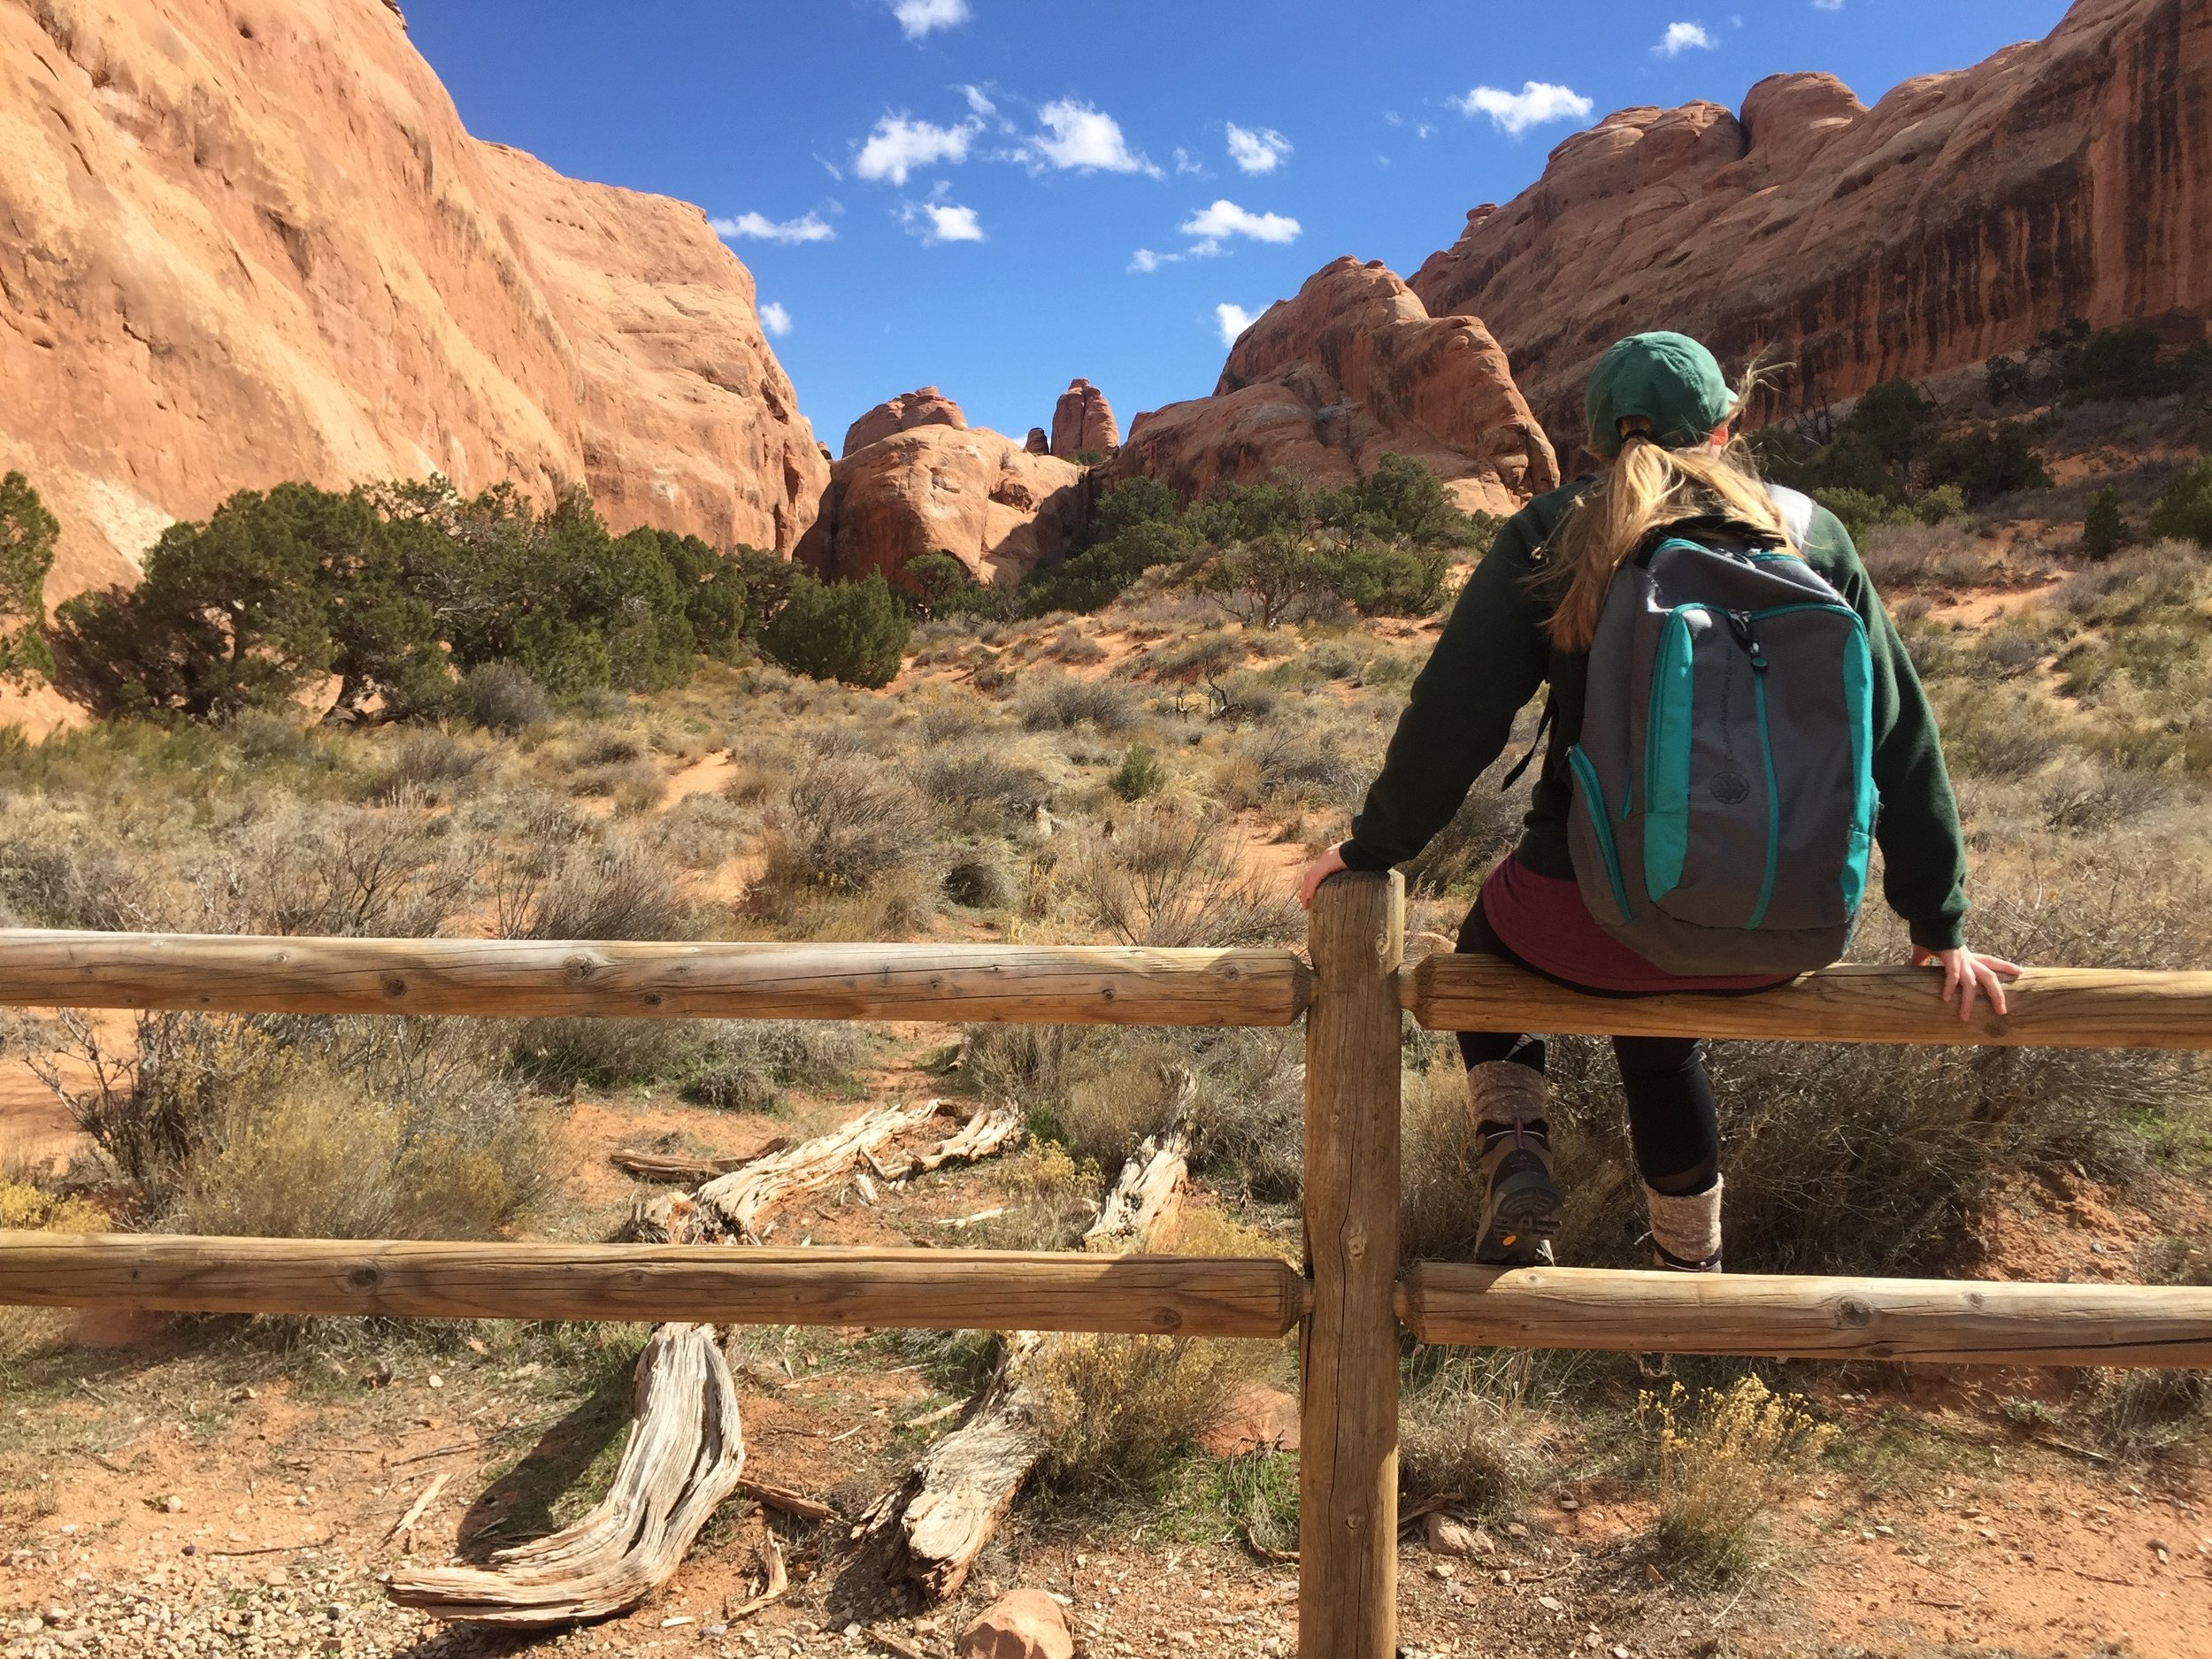 """A student on one of our great adventure trips in Moab, Utah. One of our core components is """"great adventure."""" Students go on five adventure trips and four mission trips over the course of their nine months at Vox Bivium Gap Year School."""